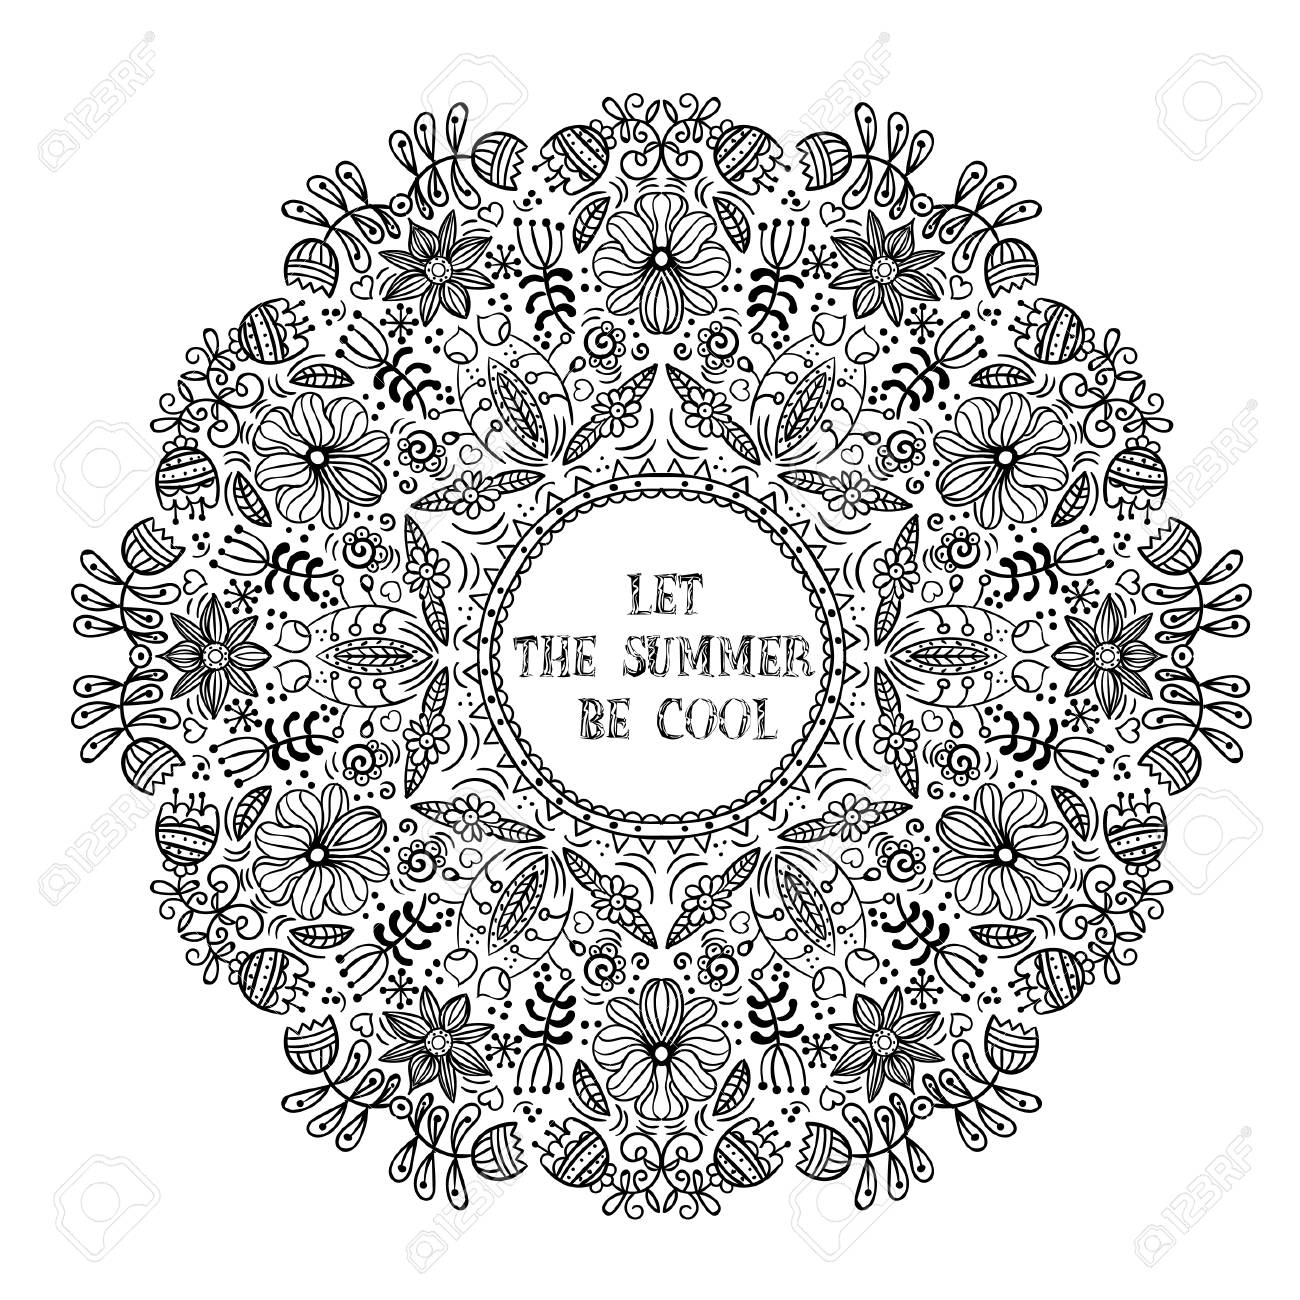 Vector Illustration Of A Linear Black And White Flower Arrangement